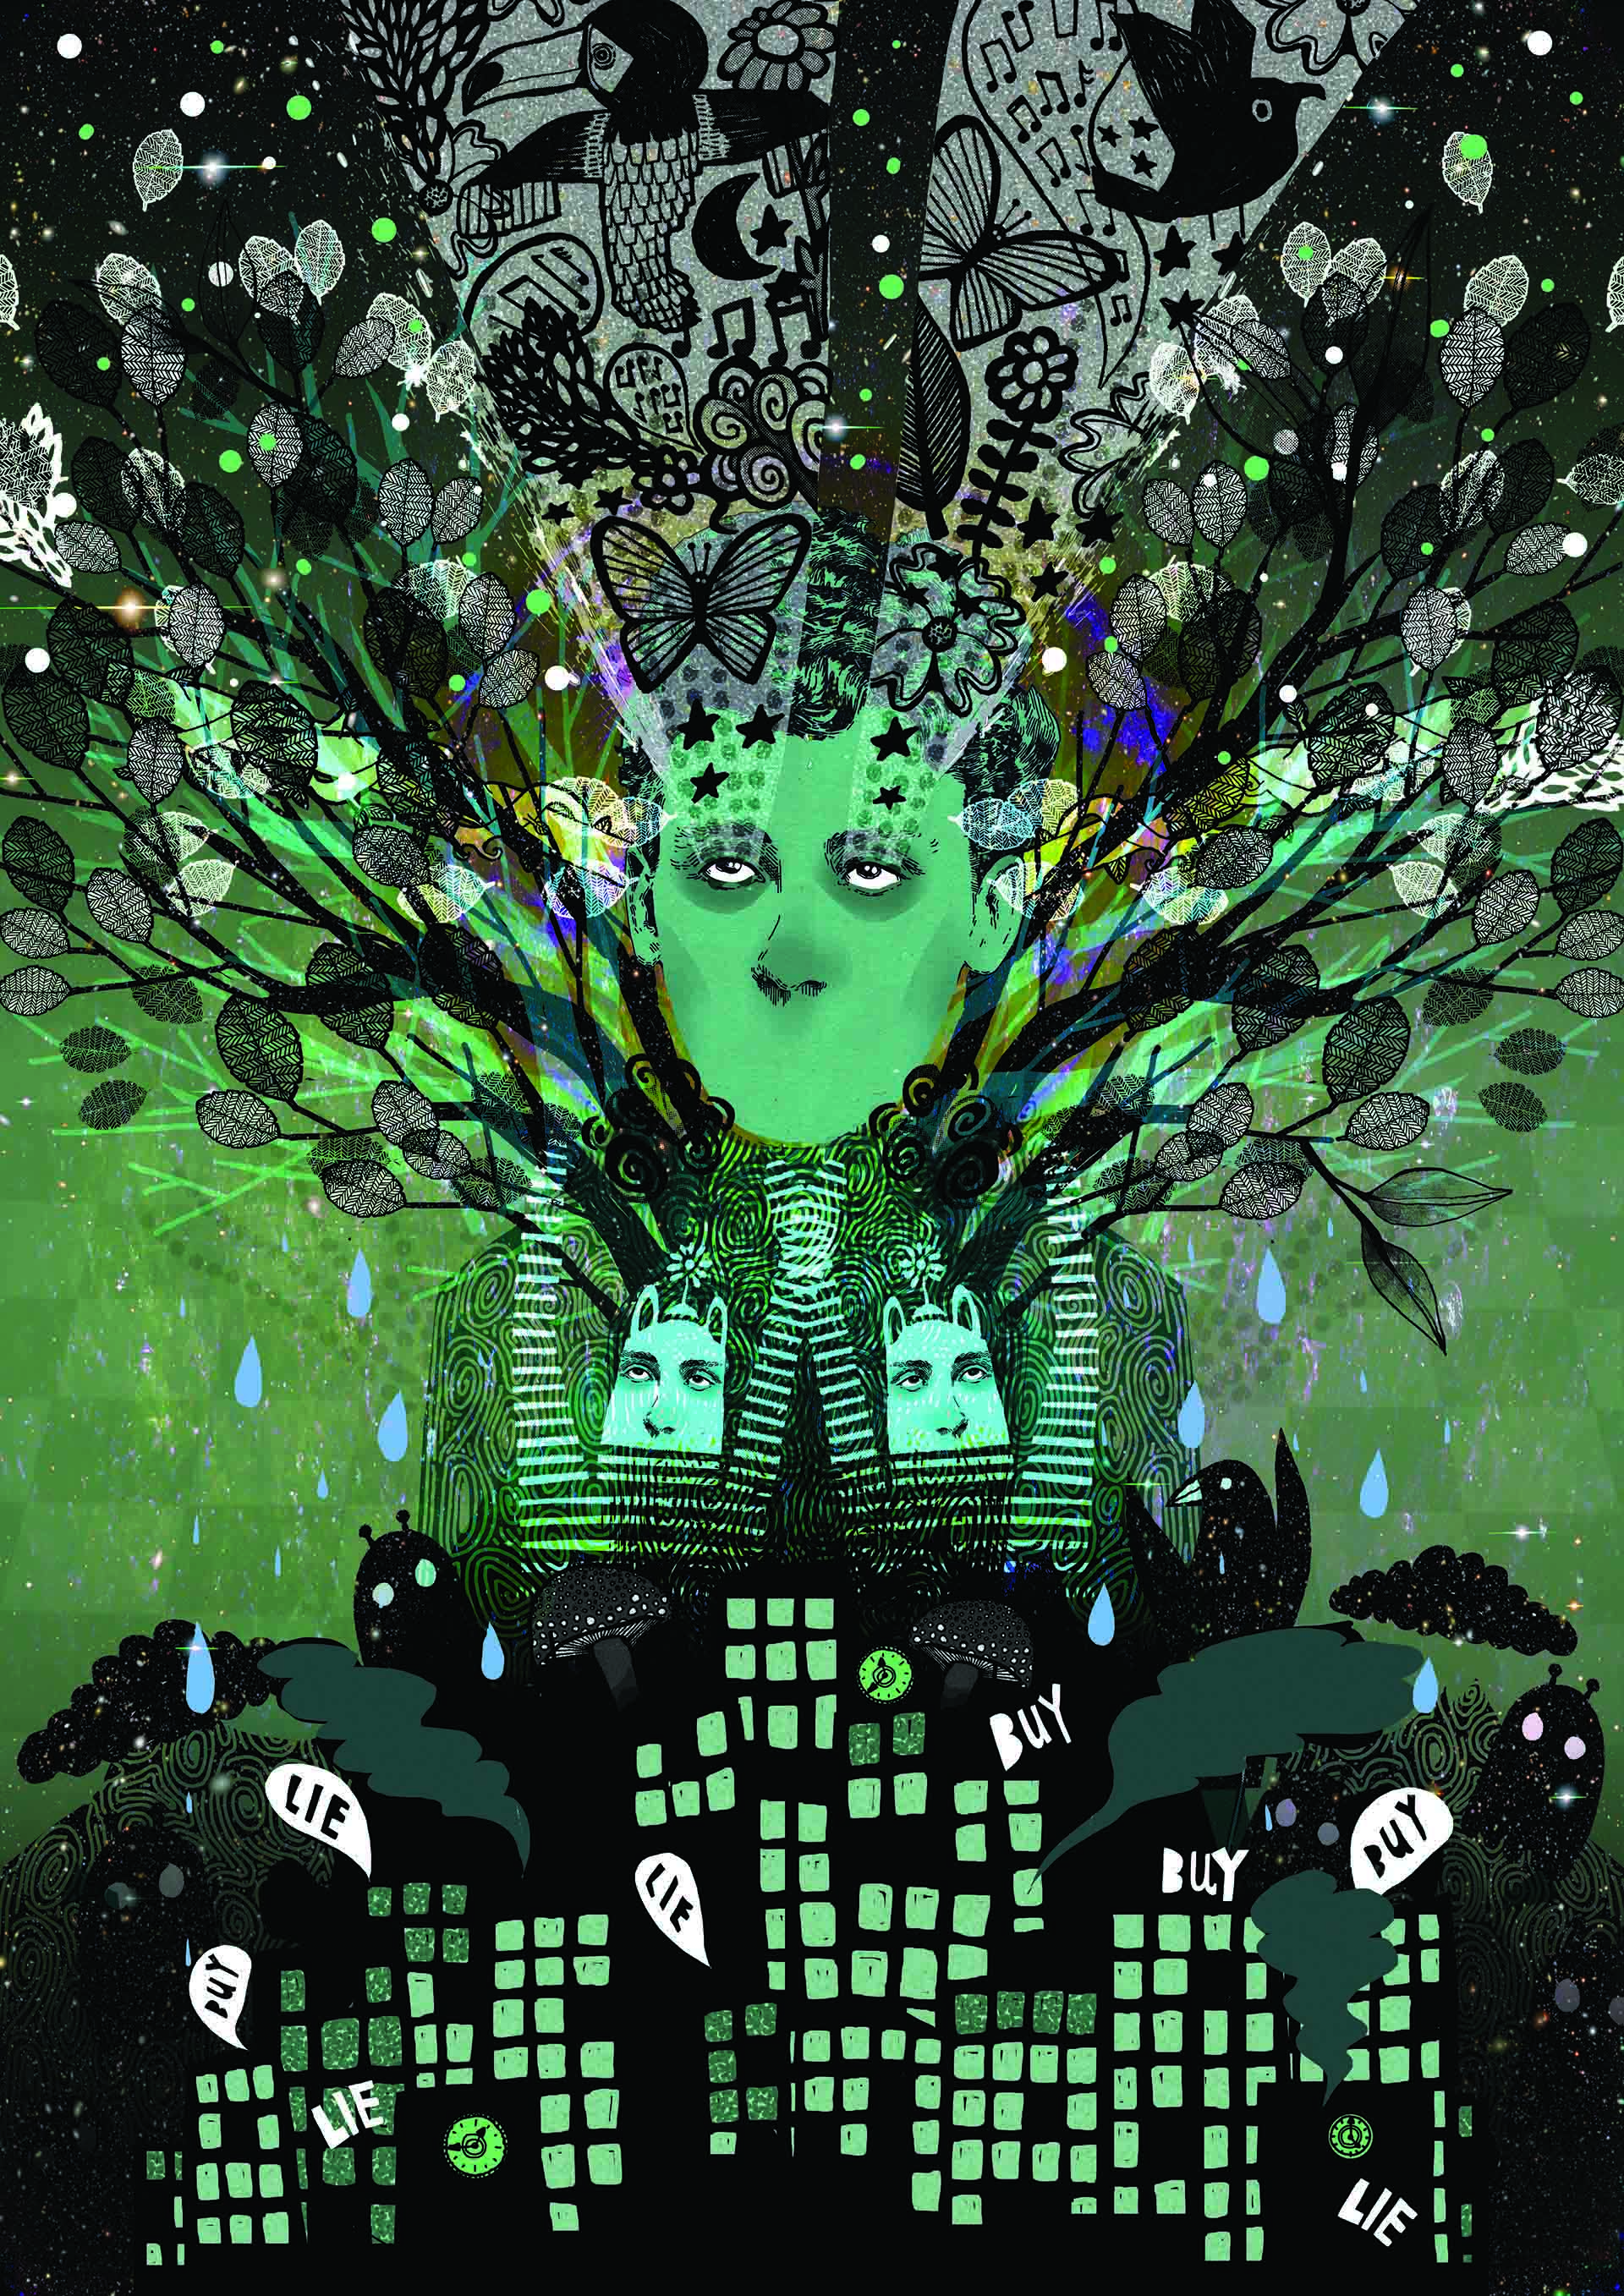 ayahuasca-illustration-3-rebecca-hendin-hallucination-psychedelic-trip-spiritual-capitalism-dream-a3-cmyk